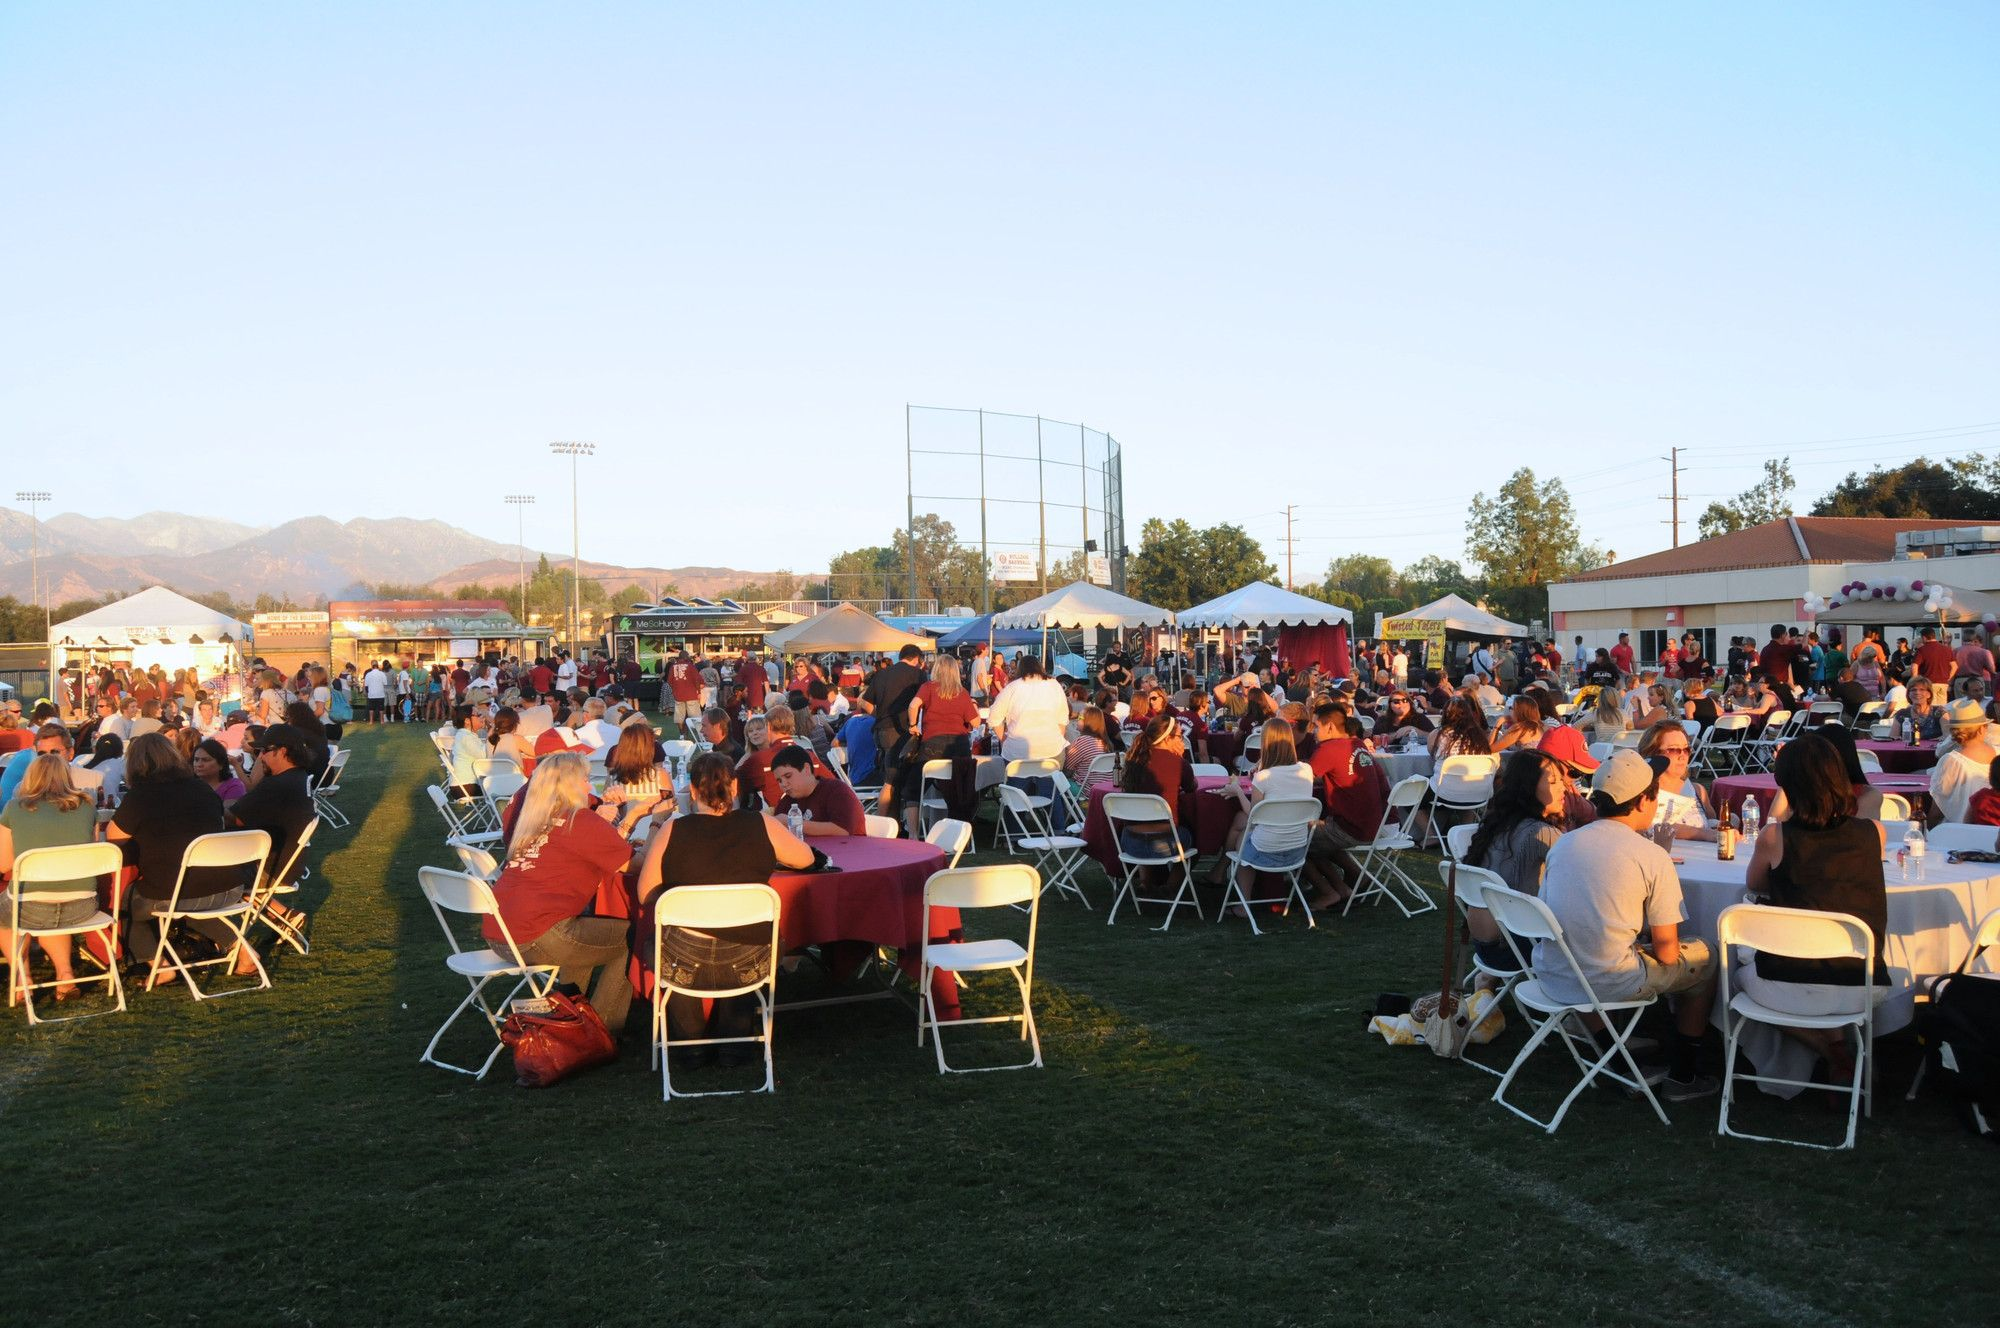 More than 2600 attendees came to the 2012 rah rah